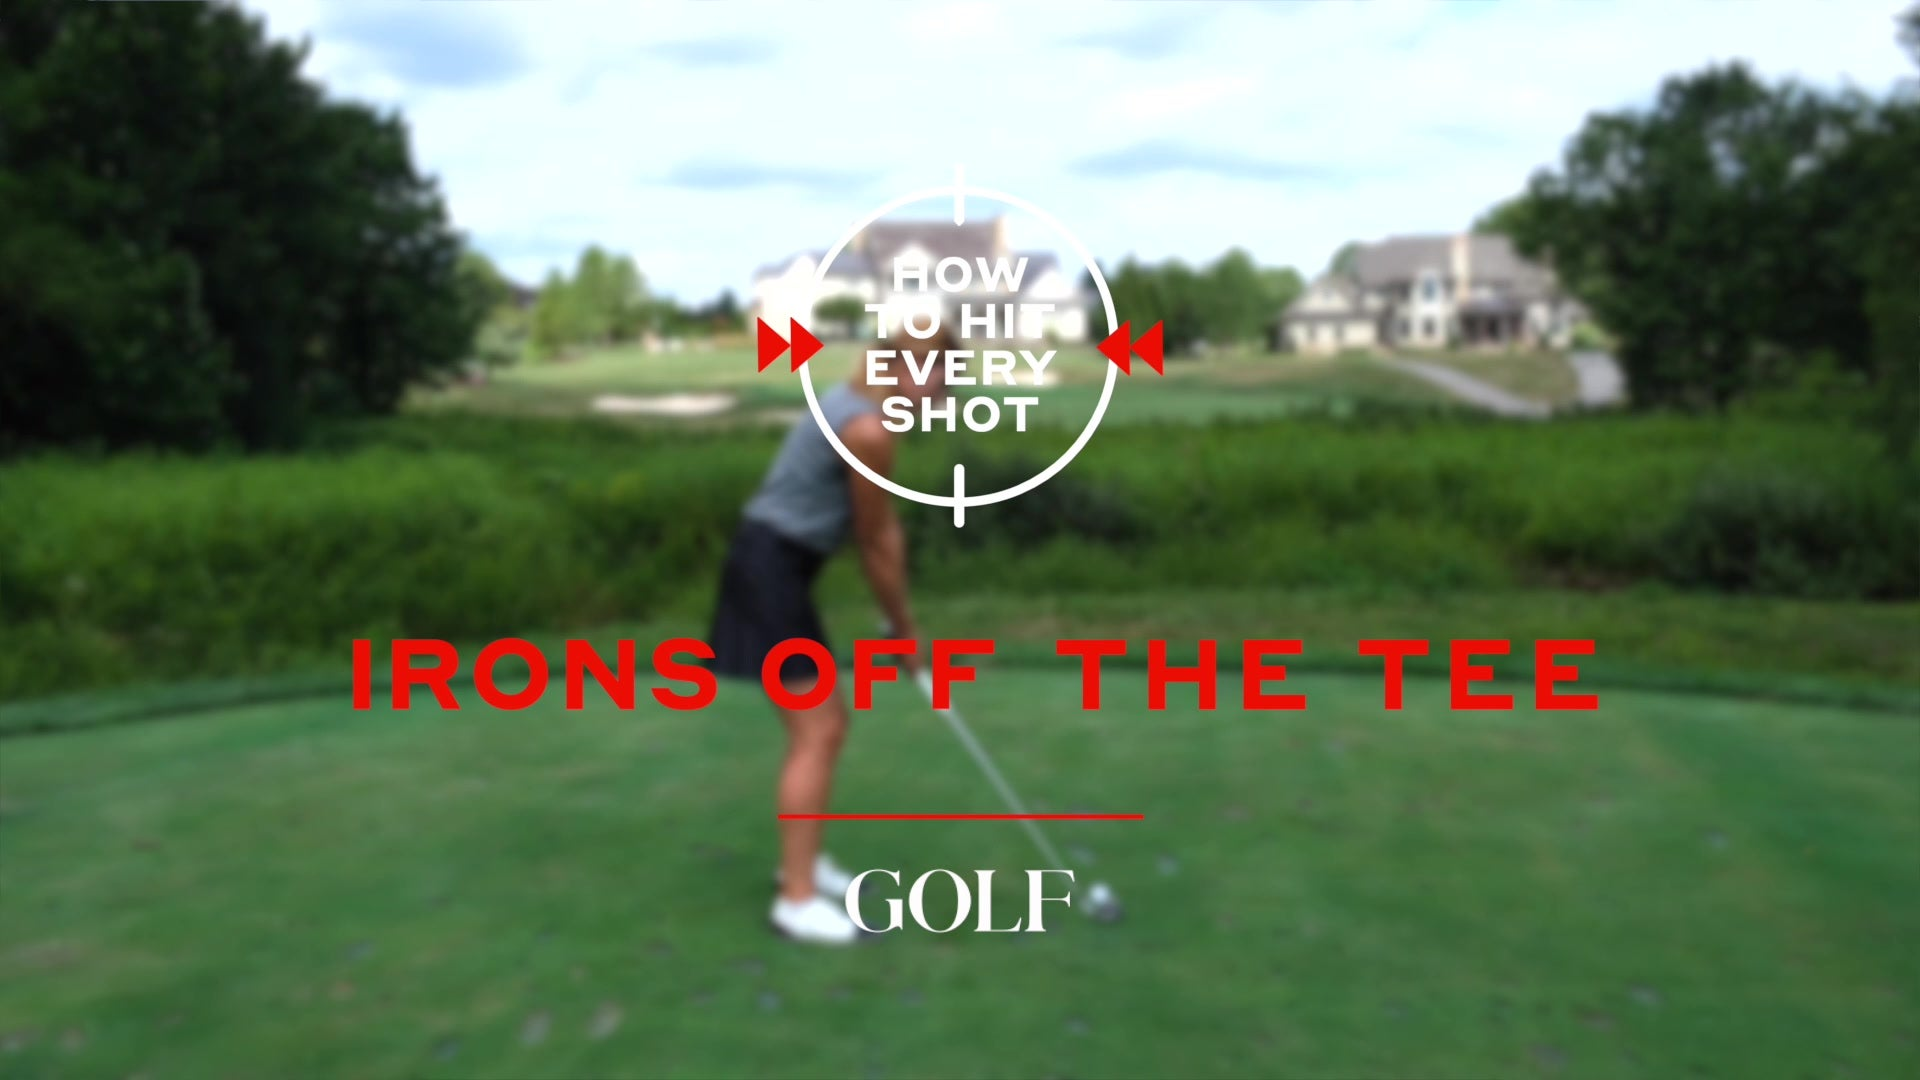 How To Hit Every Shot: Irons Off The Tee